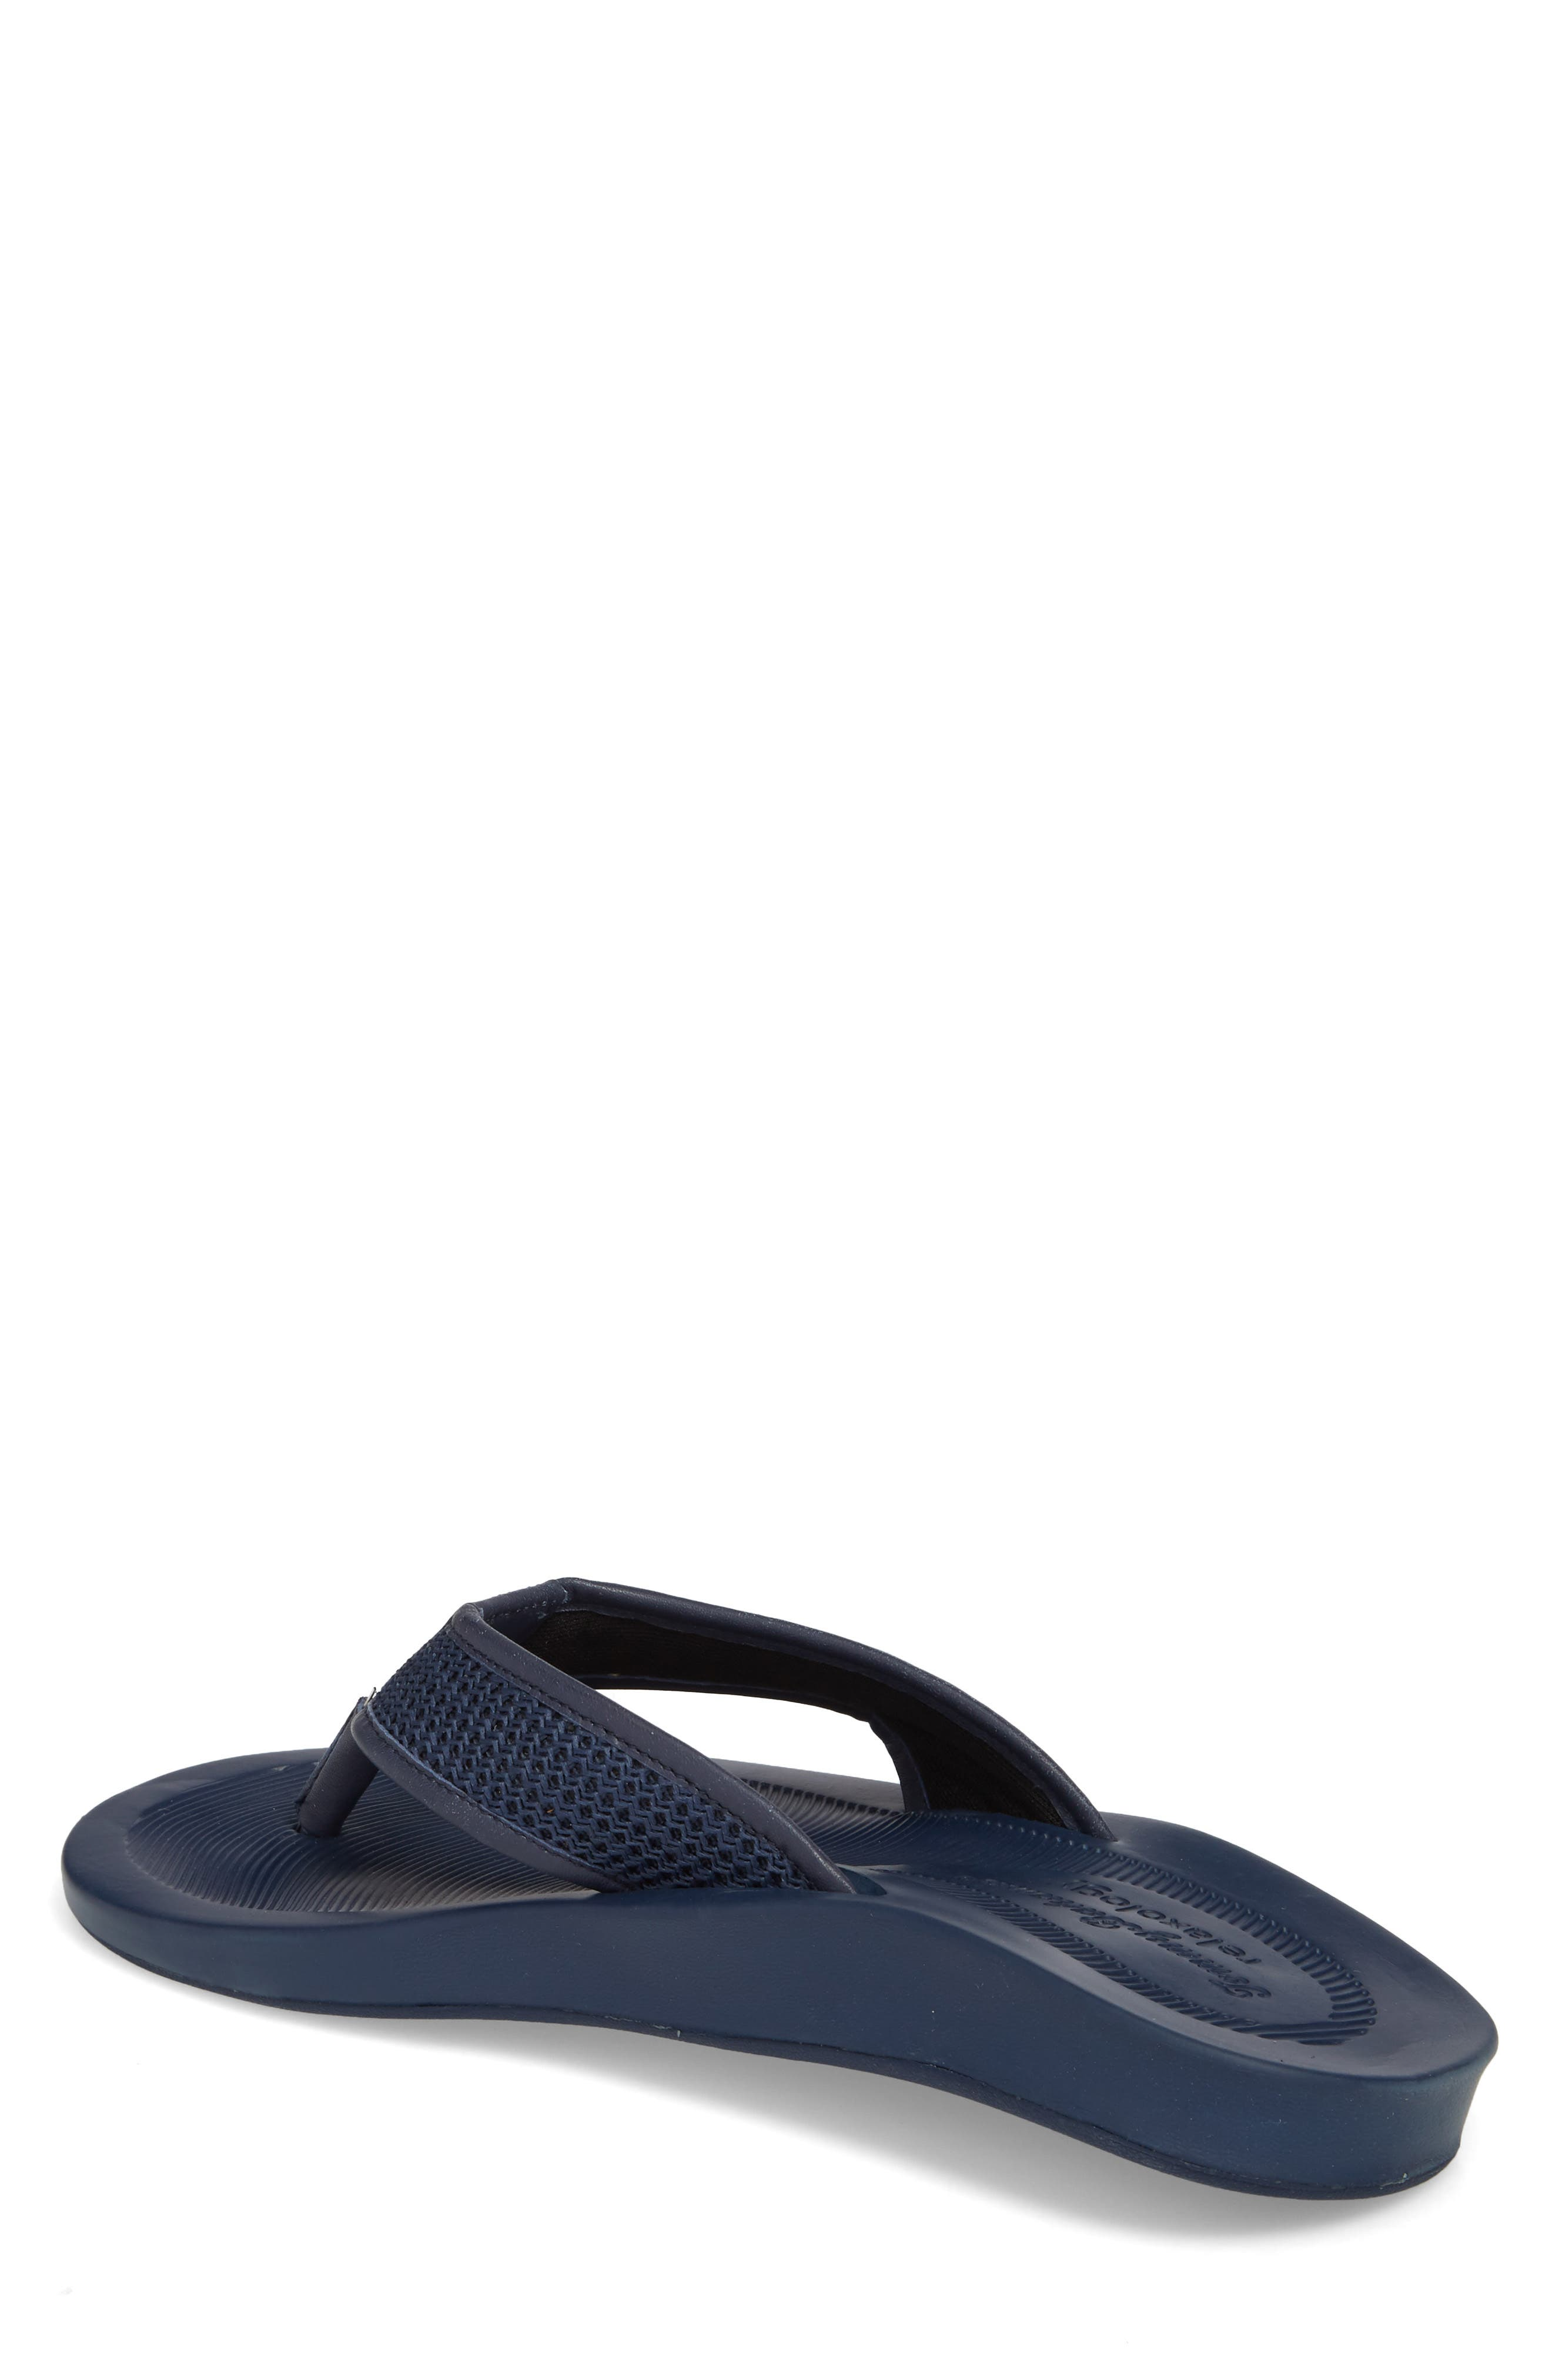 Shallows Edge Mesh Flip Flop,                             Alternate thumbnail 2, color,                             Navy Mesh/ Leather